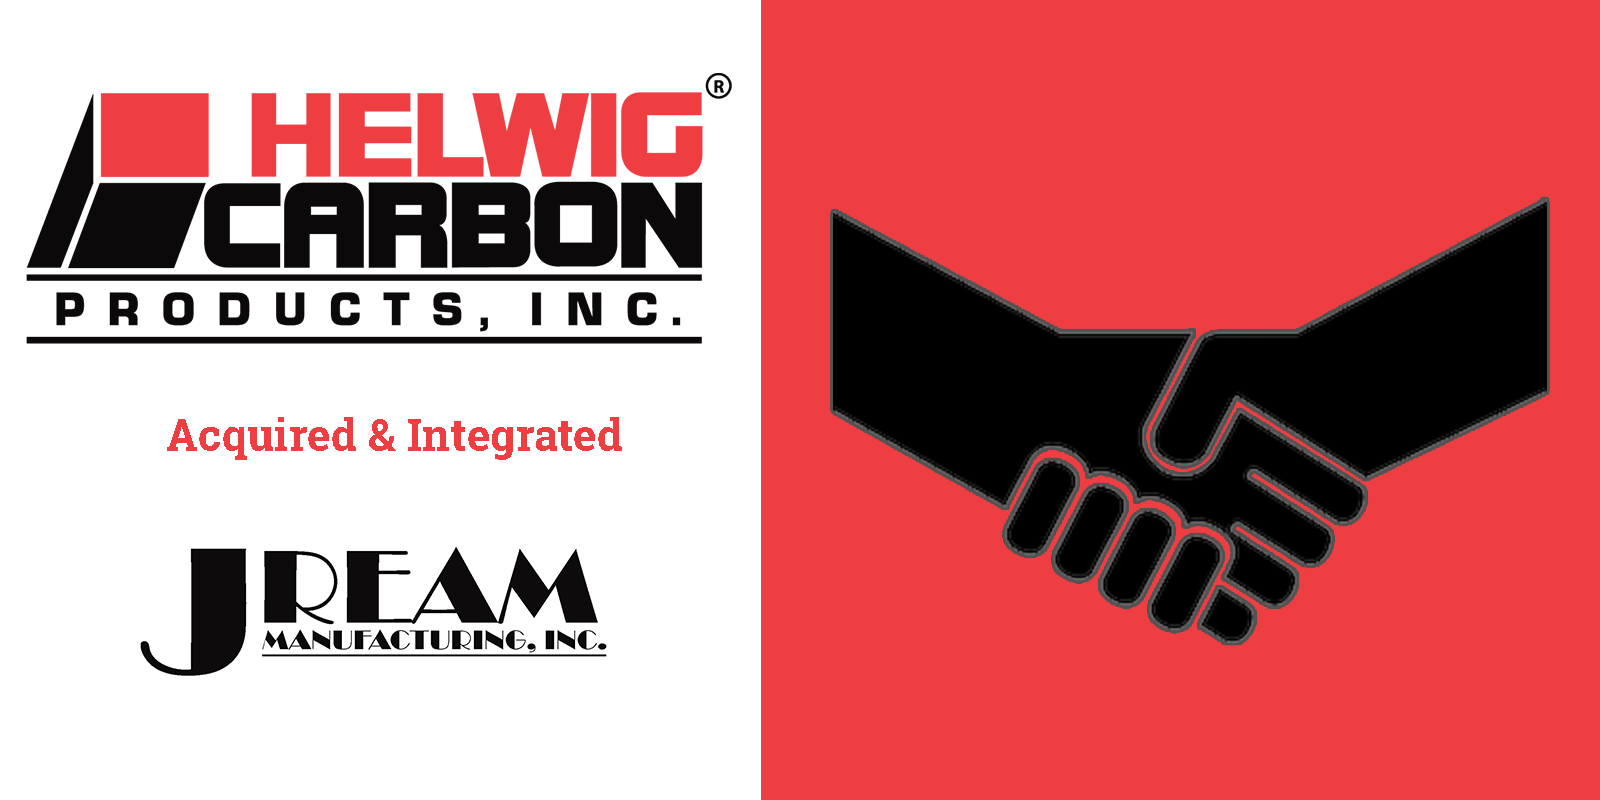 Helwig Carbon Products, Inc. is pleased to announce the acquisition and integration of the brush holder product line of J. Ream Manufacturing, Inc.